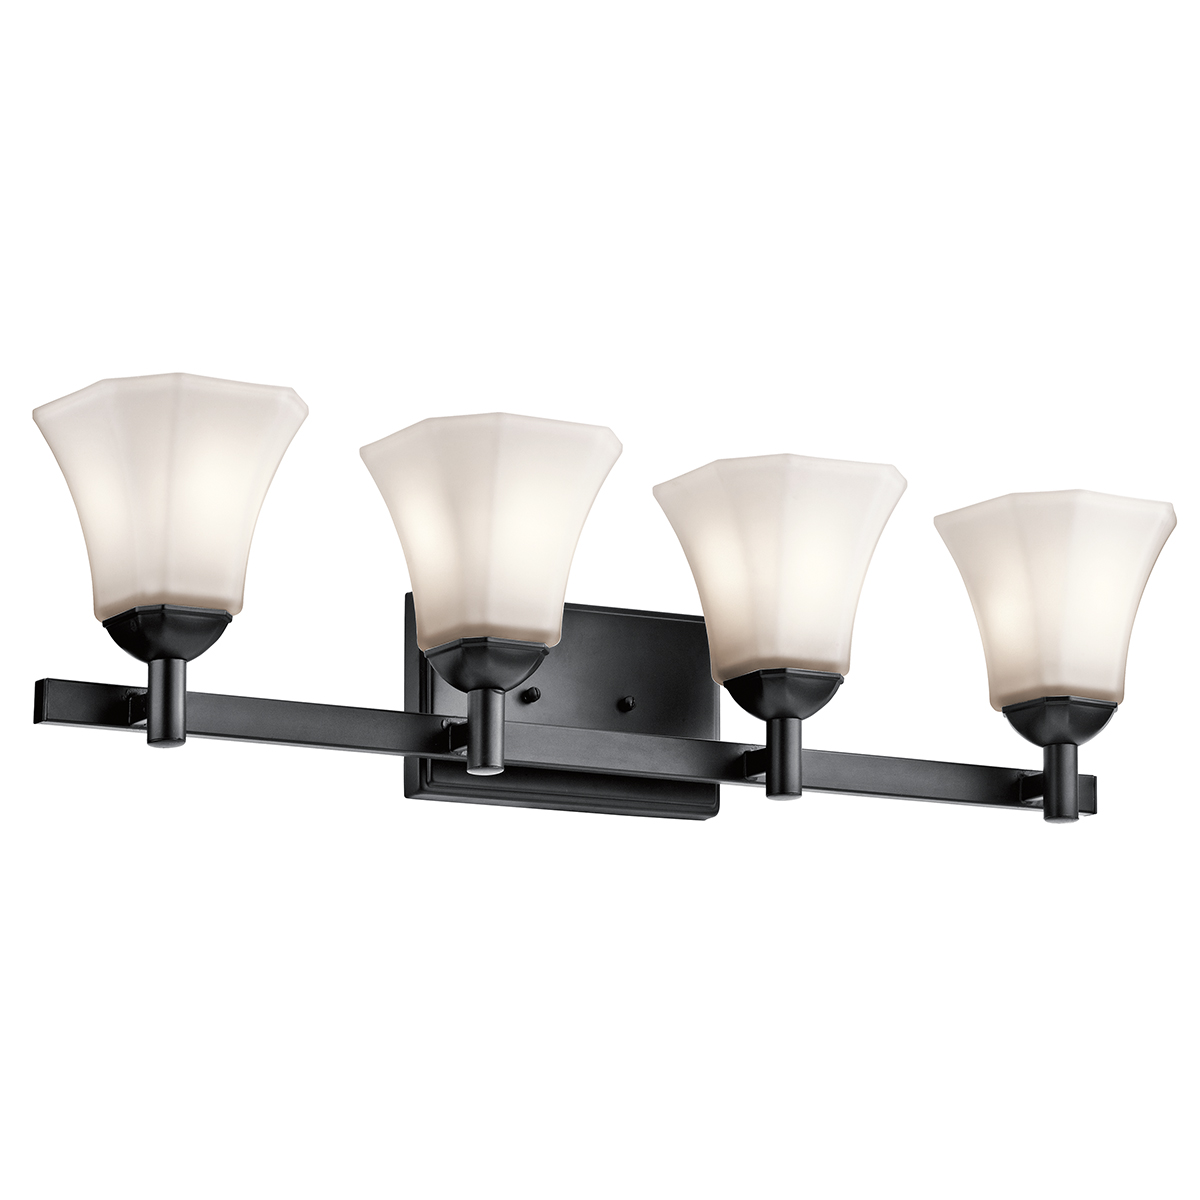 Kichler Lighting (45734BK) Serena 4-Light Bath Vanity Fixture in Black